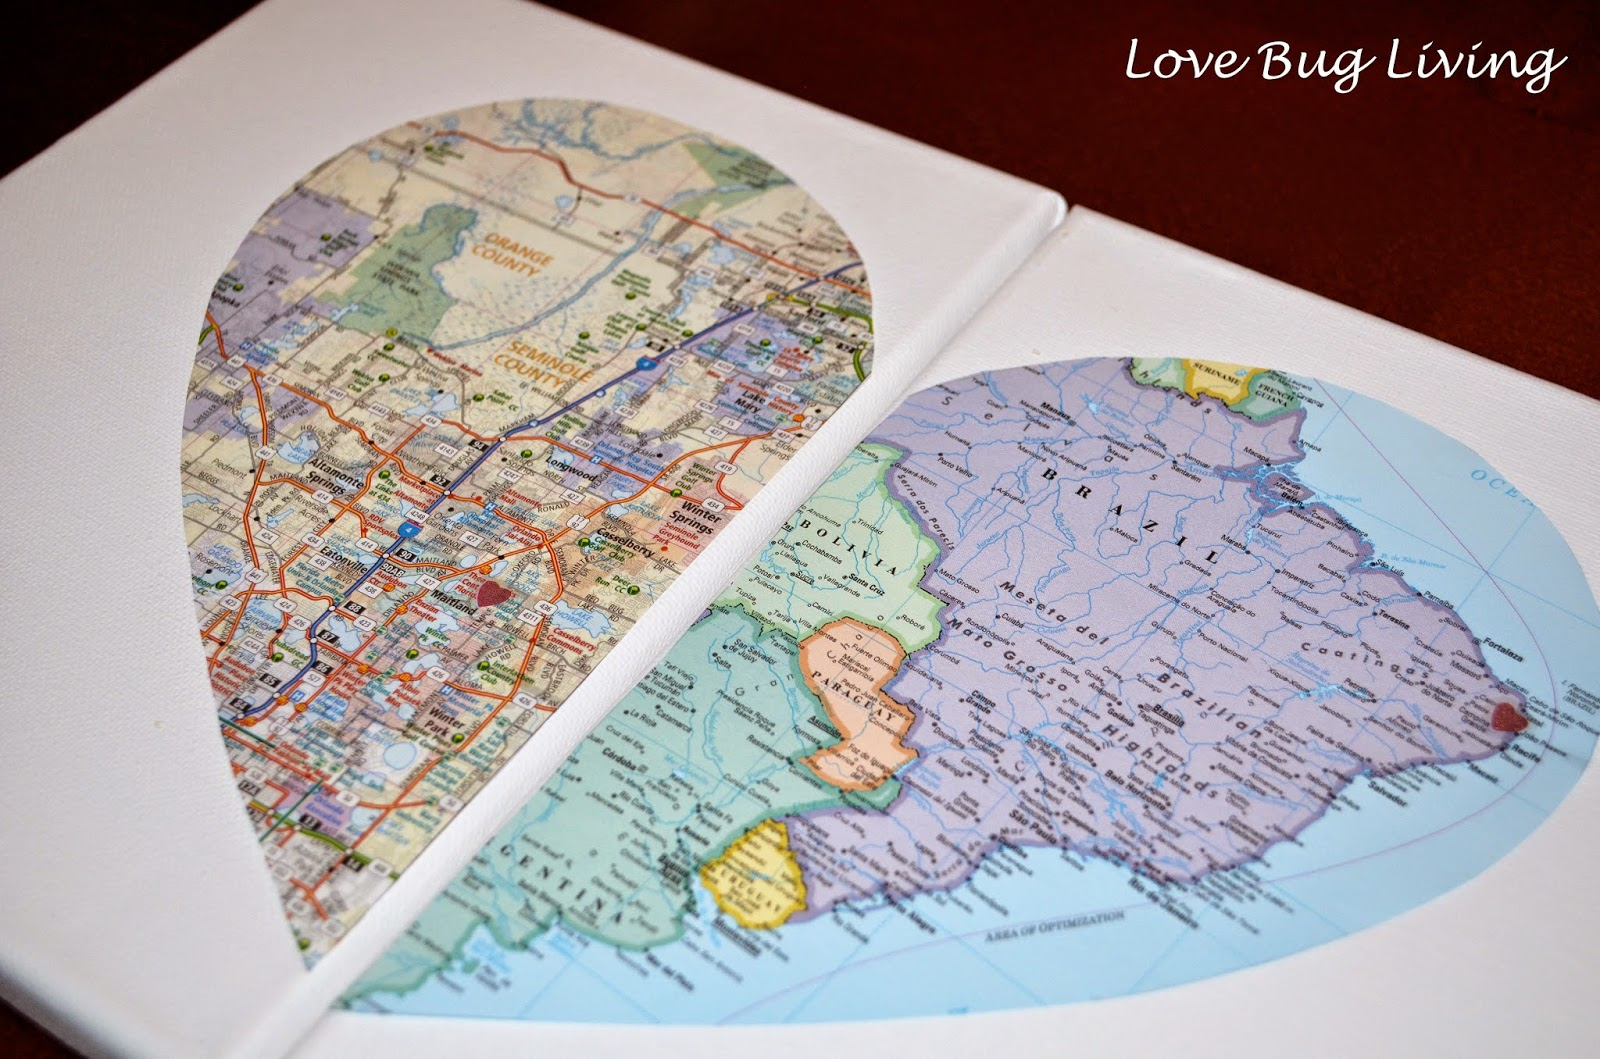 Love bug living hometown heart map canvas cut out both of your heart halves and place on your canvas you could mount them on one canvas but i chose to place them each on their own 8 x 10 gumiabroncs Image collections